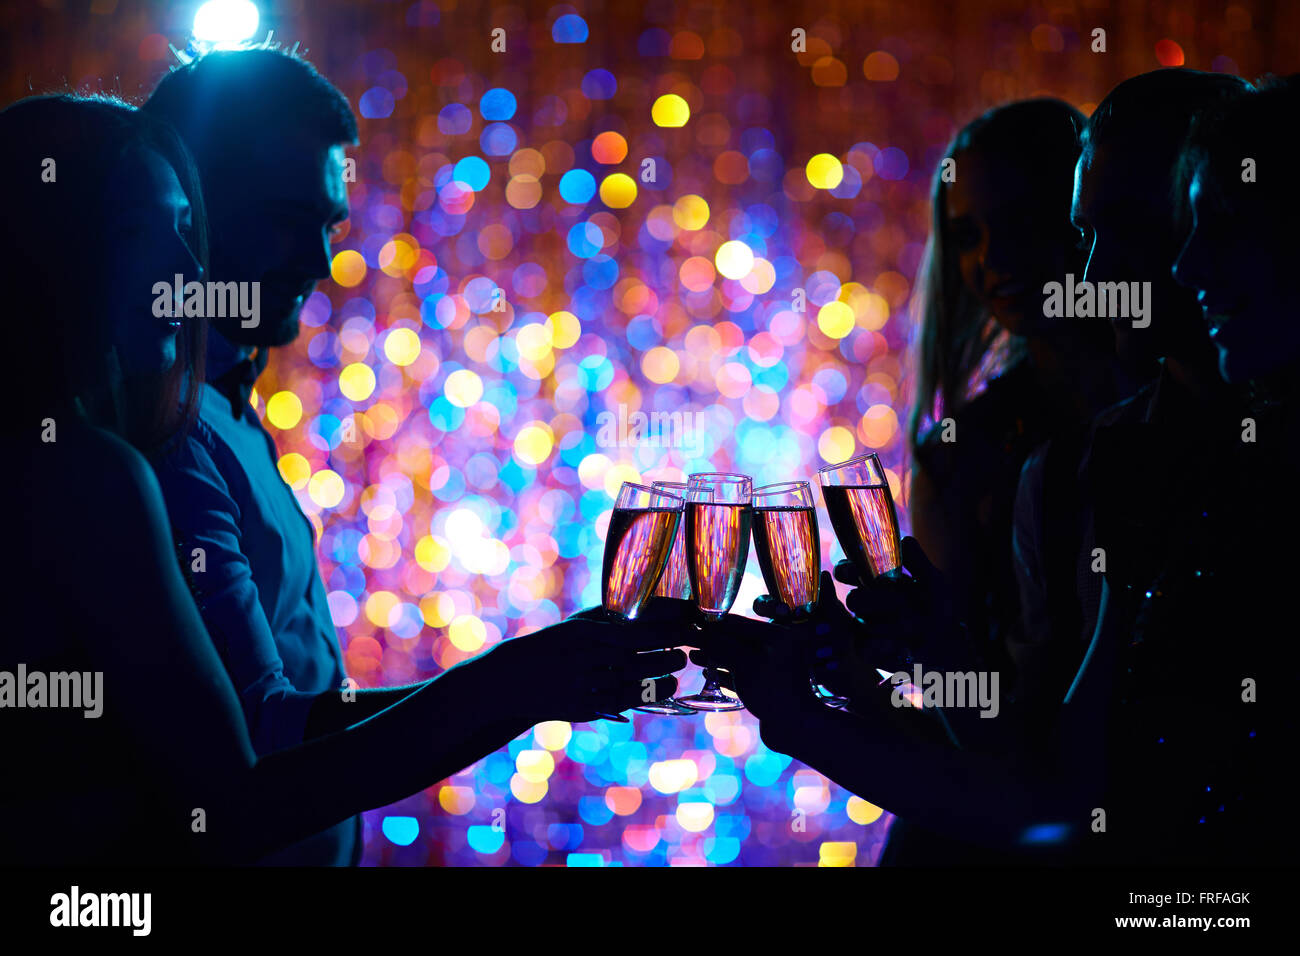 Toasting at party Photo Stock